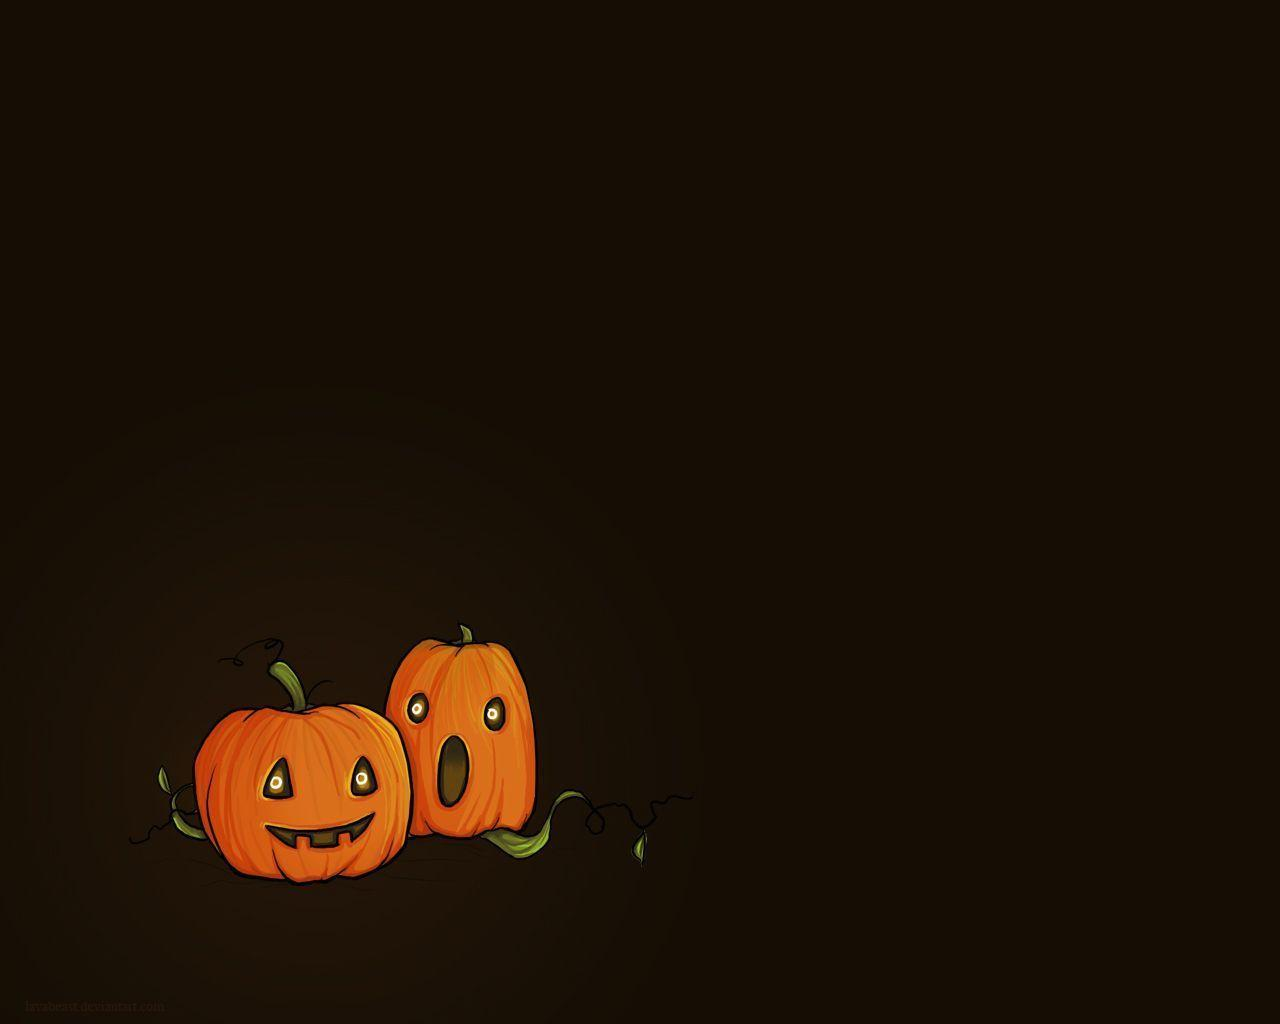 cute halloween wallpaper - photo #5